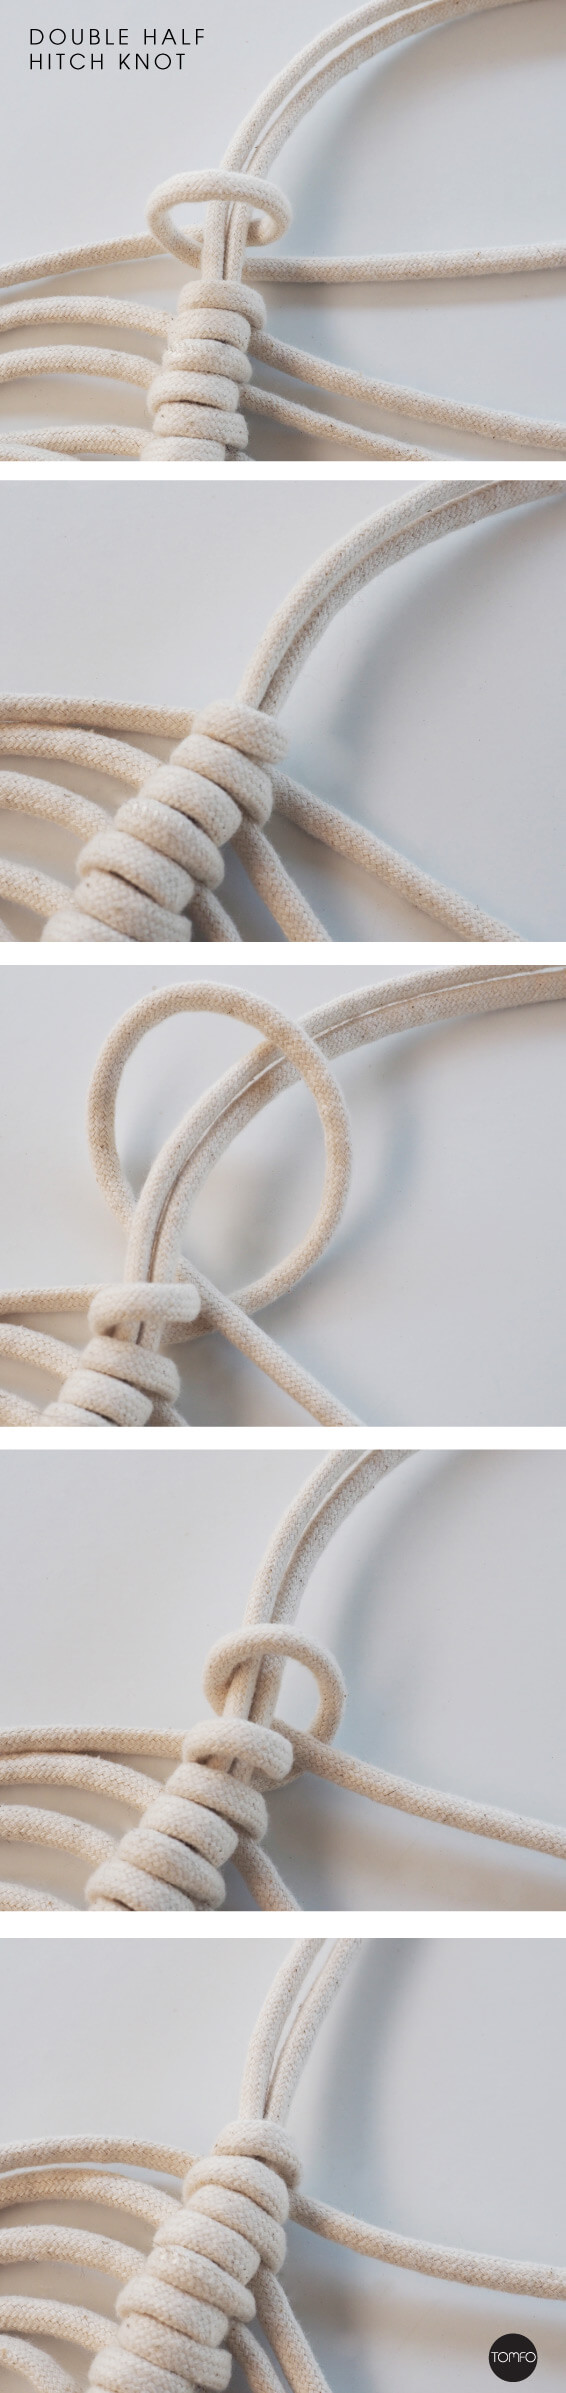 DIY-Macrame-hanging-Double-half-hitch-knot-Tomfo